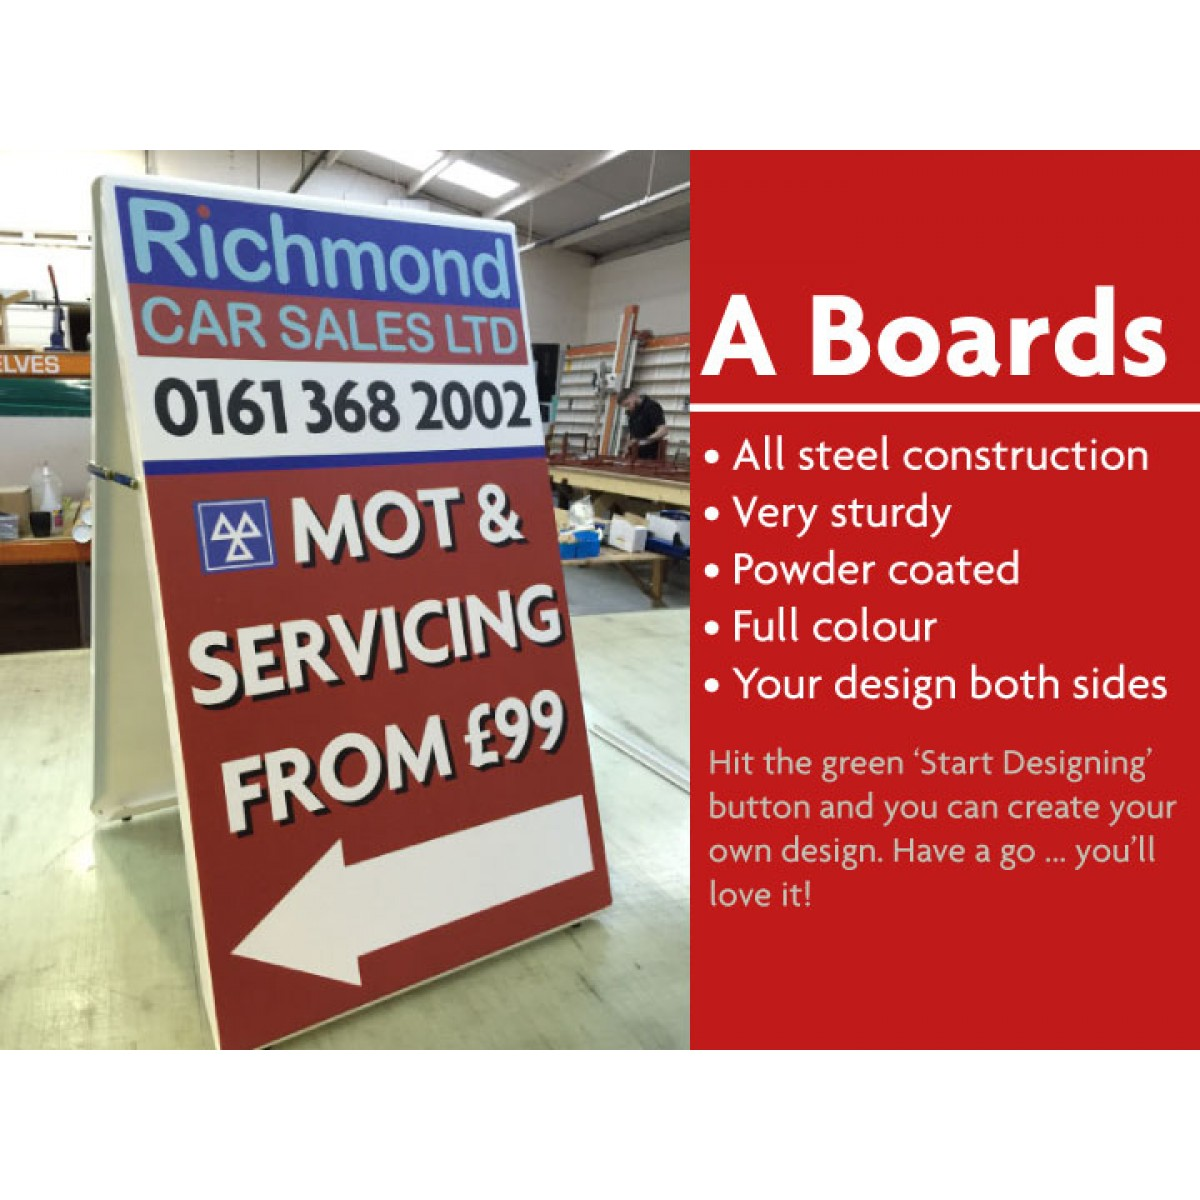 Pavement Signs And A Boards Design Your Own The Sign